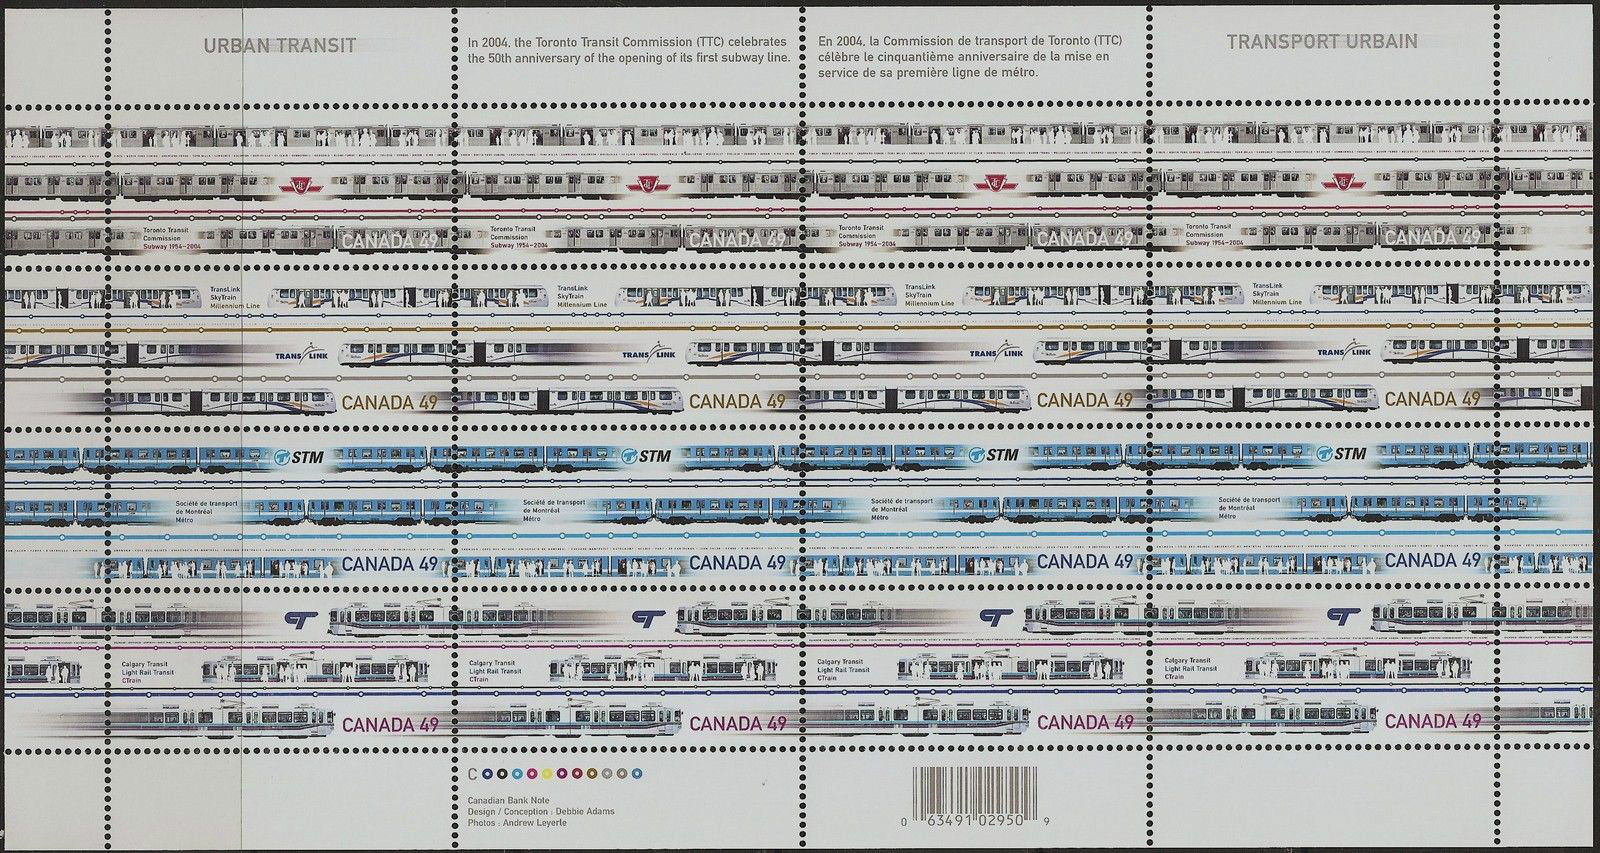 2004 CDN - SG2266a - Light Rail Urban Transit Complete Sheet